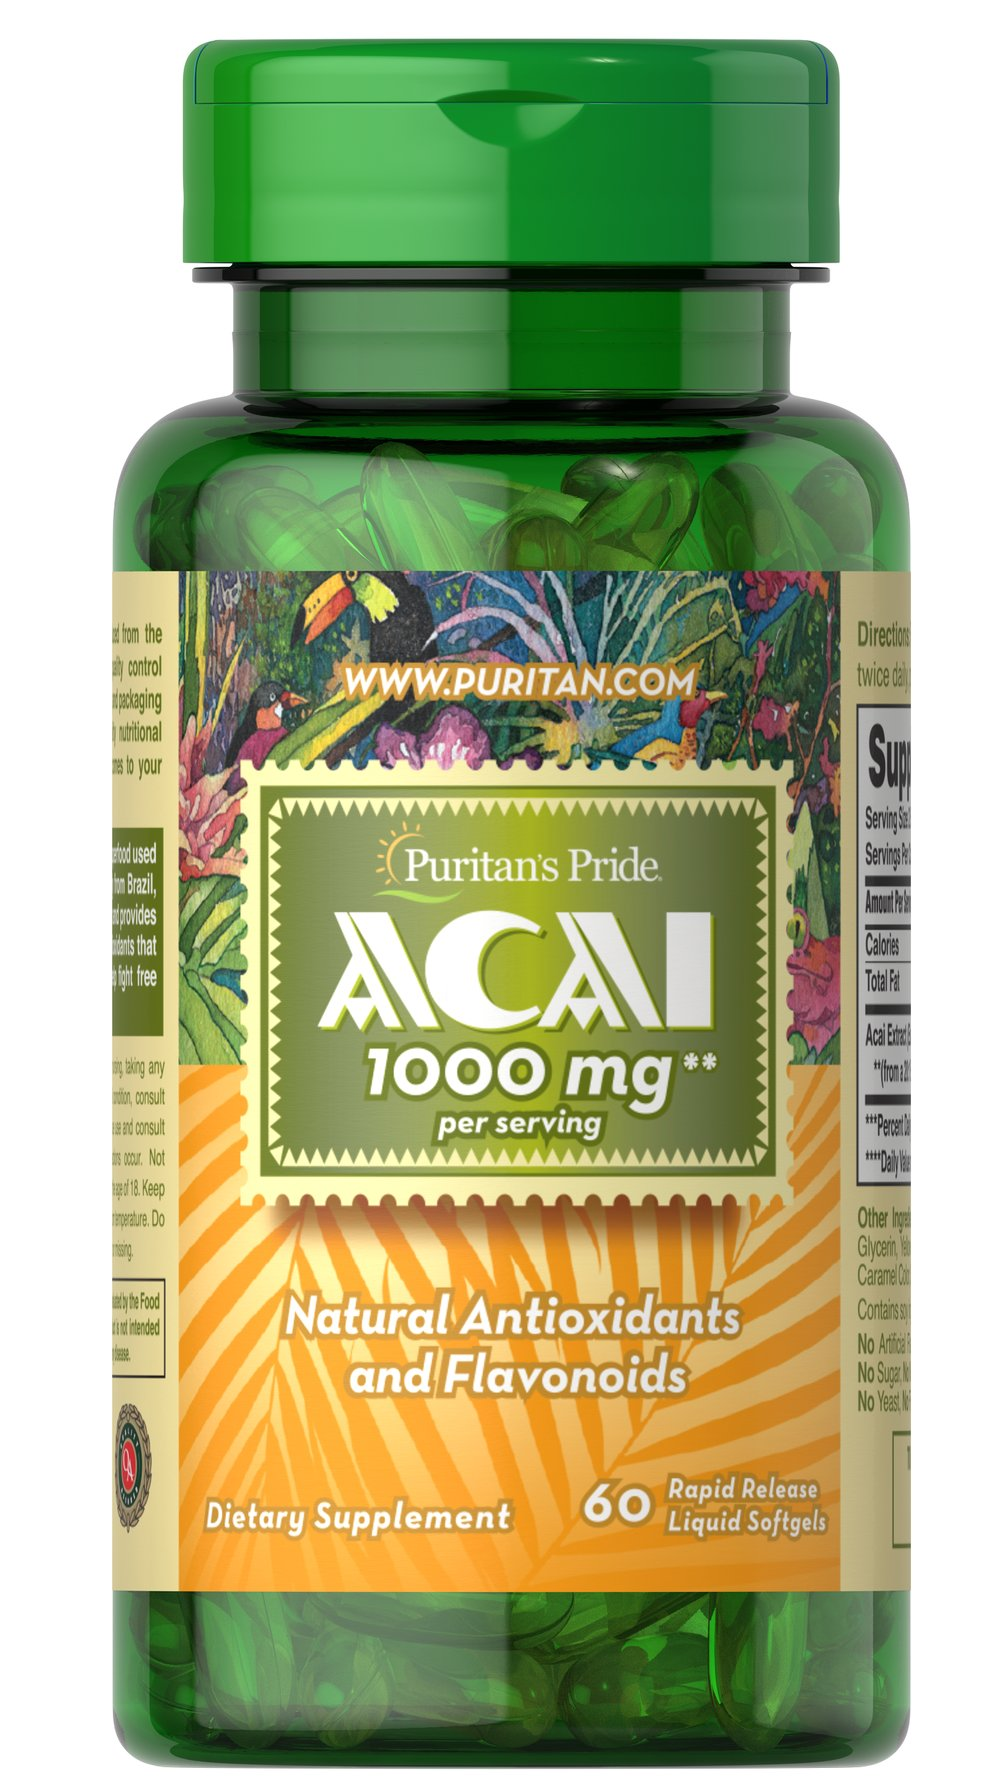 Acai 1000 mg Rapid-release liquid softgels. <p></p>Contains 1000 mg Acai per serving (two softgels).<p></p>Contains natural flavonoids and antioxidants<p></p>Supports overall well-being**<p></p>Helps enrich the vitality of your body and soul**<p></p> 60 Softgels 1000 mg $8.99